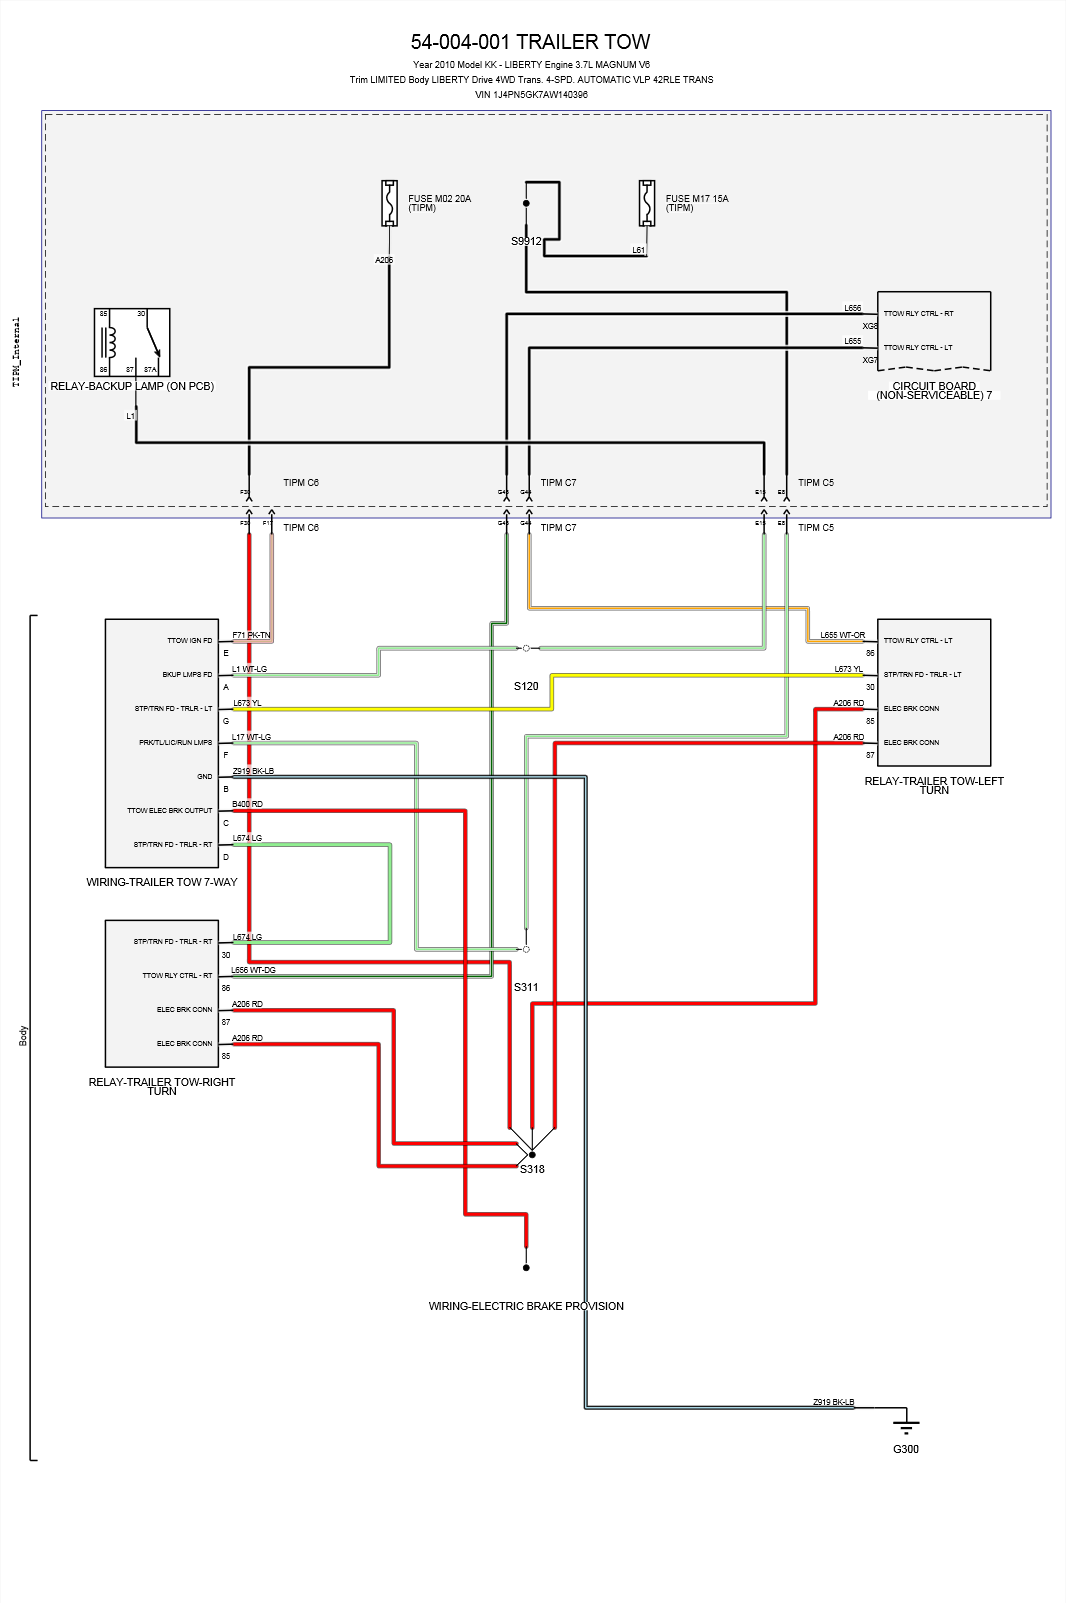 Jeep Liberty Wiring Diagram from f01.justanswer.com